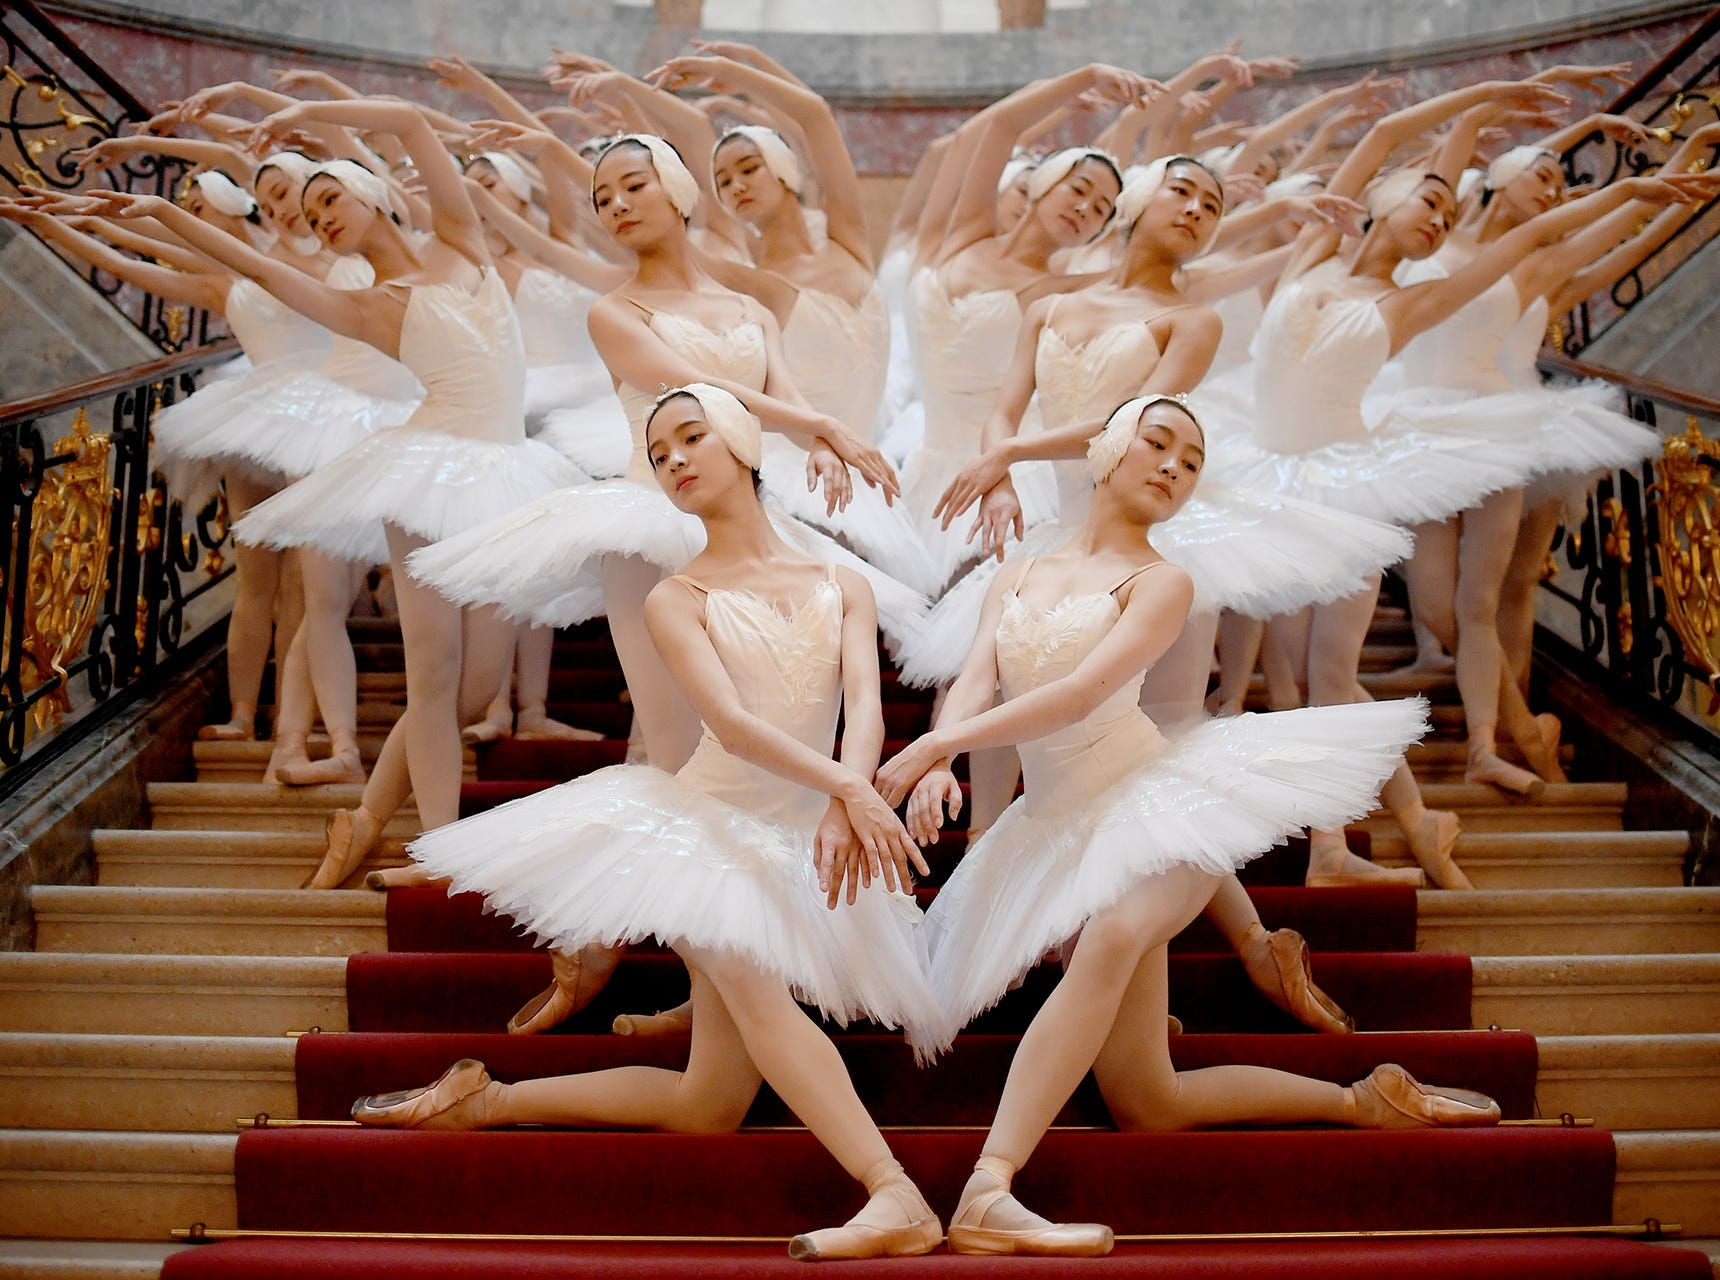 Dancers of the Shanghai Ballet perform  at the Bode museum in Berlin on November 29, 2018. The German premiere takes place on December 1, 2018.